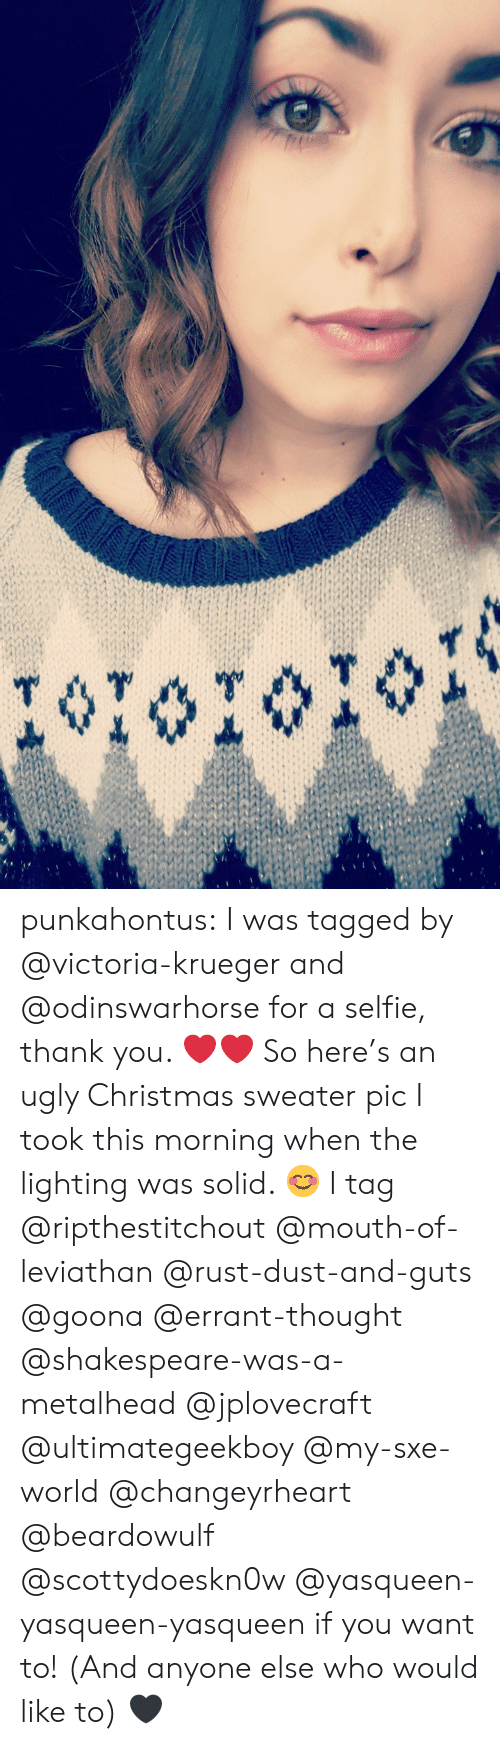 metalhead: punkahontus:  I was tagged by @victoria-krueger and @odinswarhorse for a selfie, thank you. ❤❤  So here's an ugly Christmas sweater pic I took this morning when the lighting was solid. 😊  I tag @ripthestitchout @mouth-of-leviathan @rust-dust-and-guts @goona @errant-thought @shakespeare-was-a-metalhead @jplovecraft @ultimategeekboy @my-sxe-world @changeyrheart @beardowulf @scottydoeskn0w @yasqueen-yasqueen-yasqueen if you want to! (And anyone else who would like to) 🖤